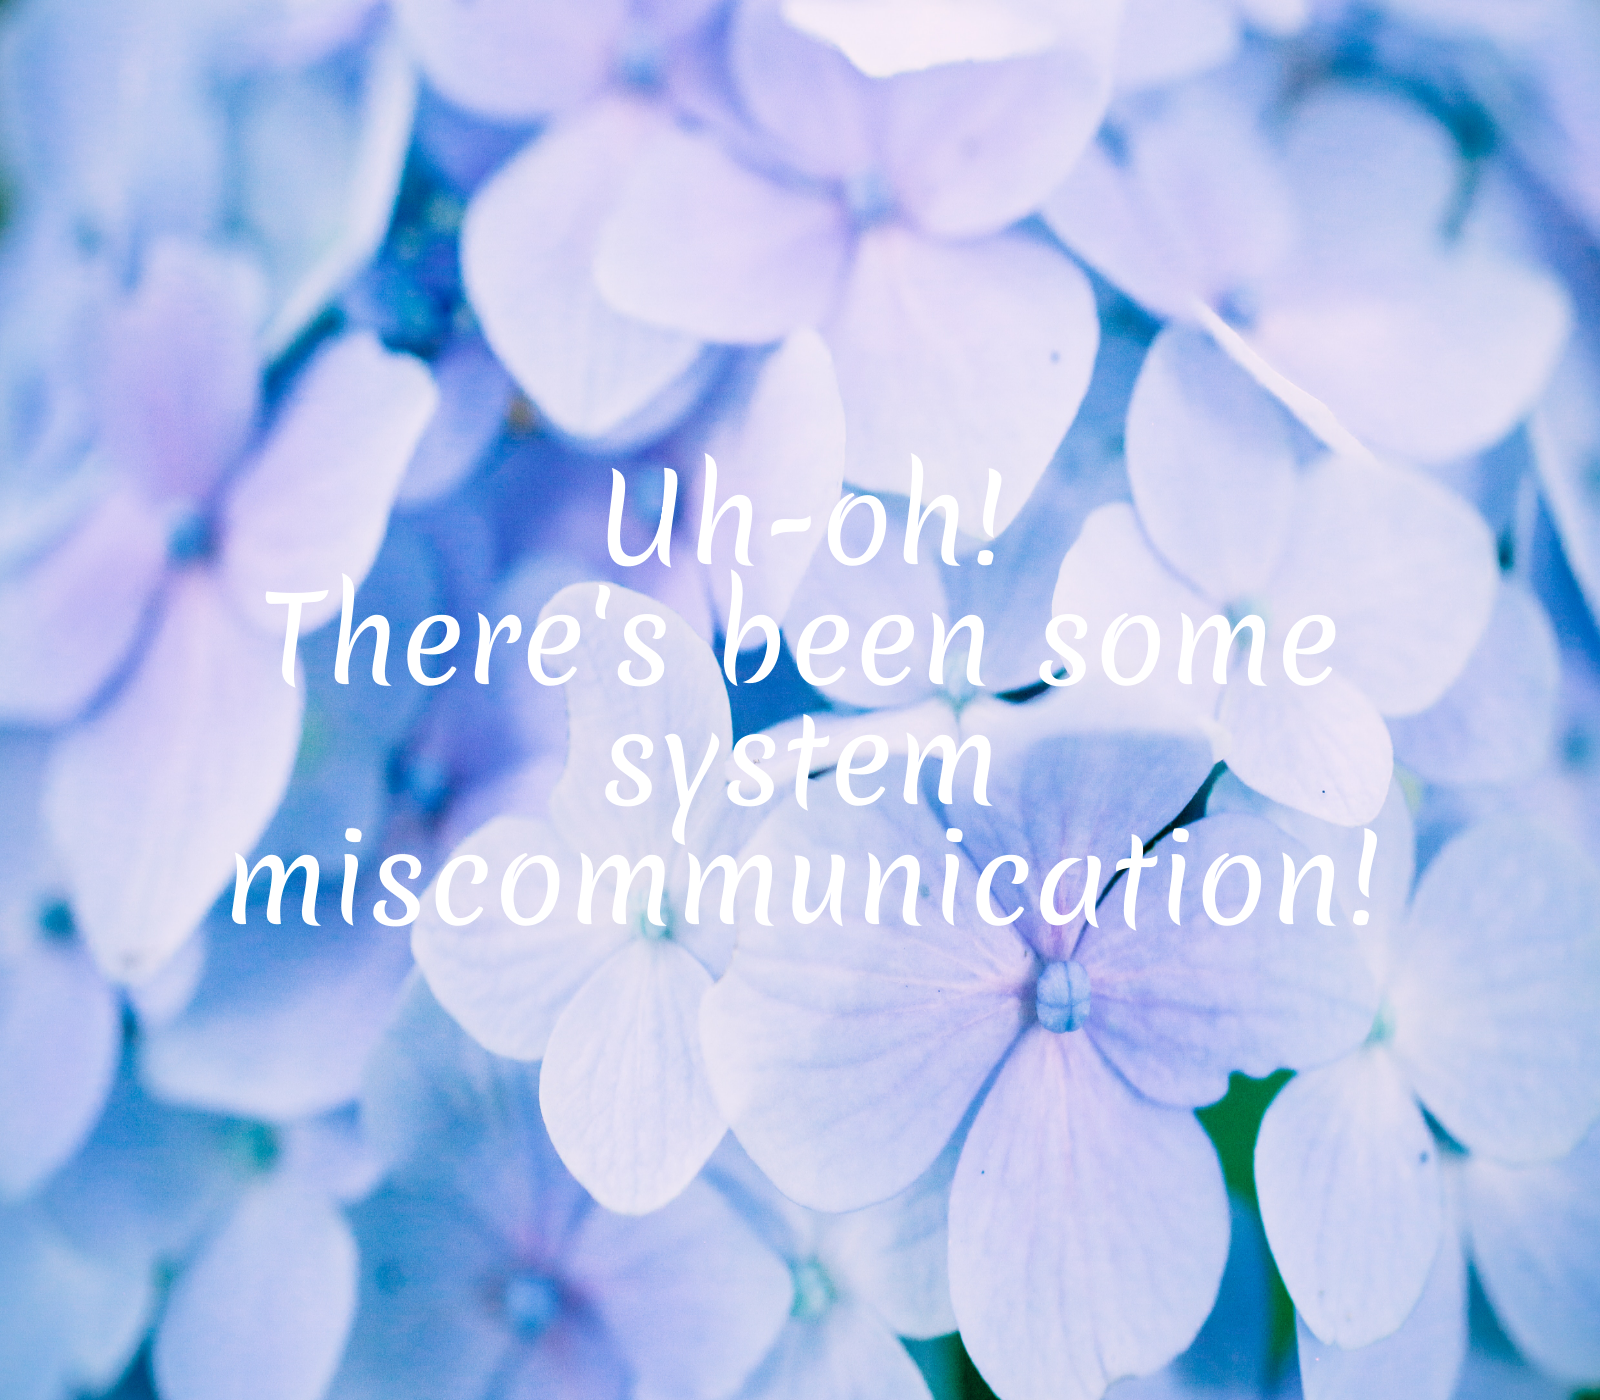 """Picture that says """"Uh-oh! There's been some system miscommunication!"""""""